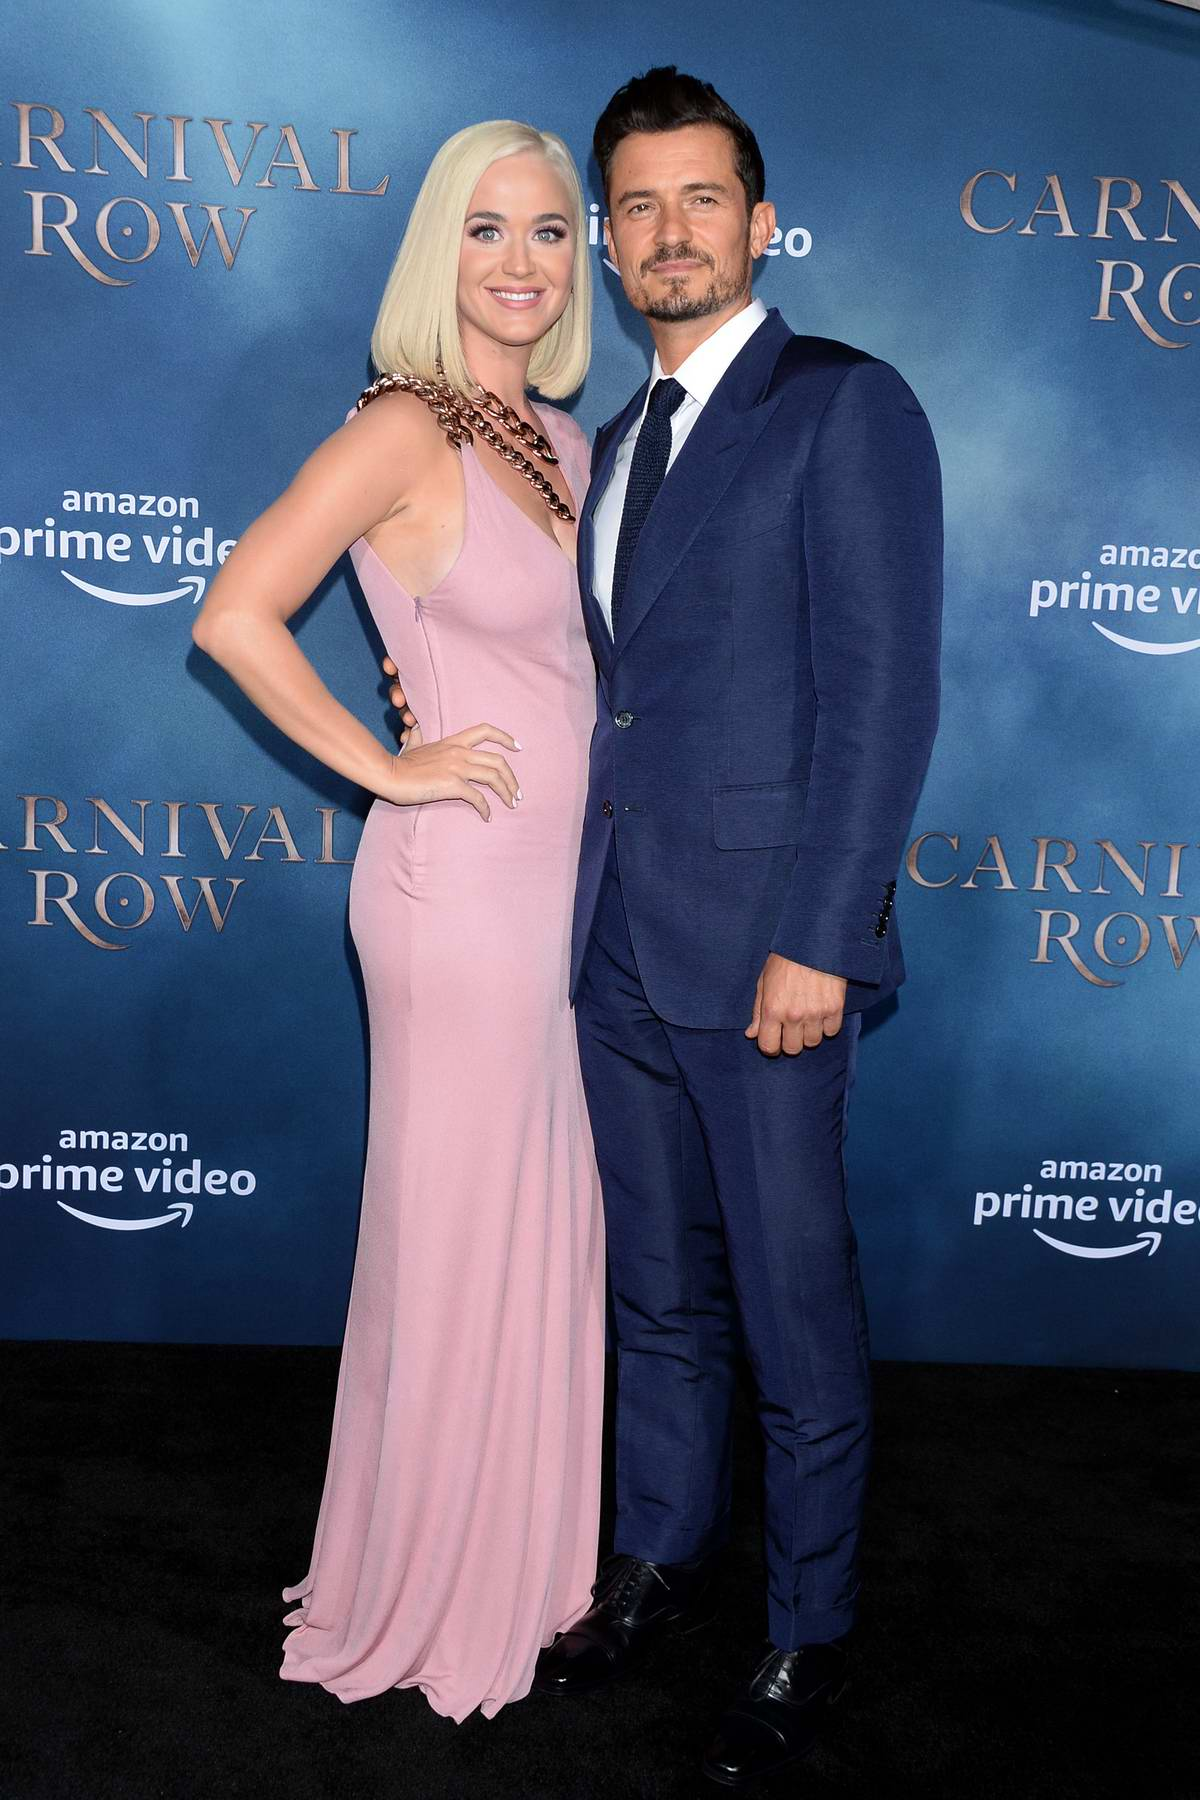 Katy Perry and Orlando Bloom attend 'Carnival Row' TV show premiere in Los Angeles